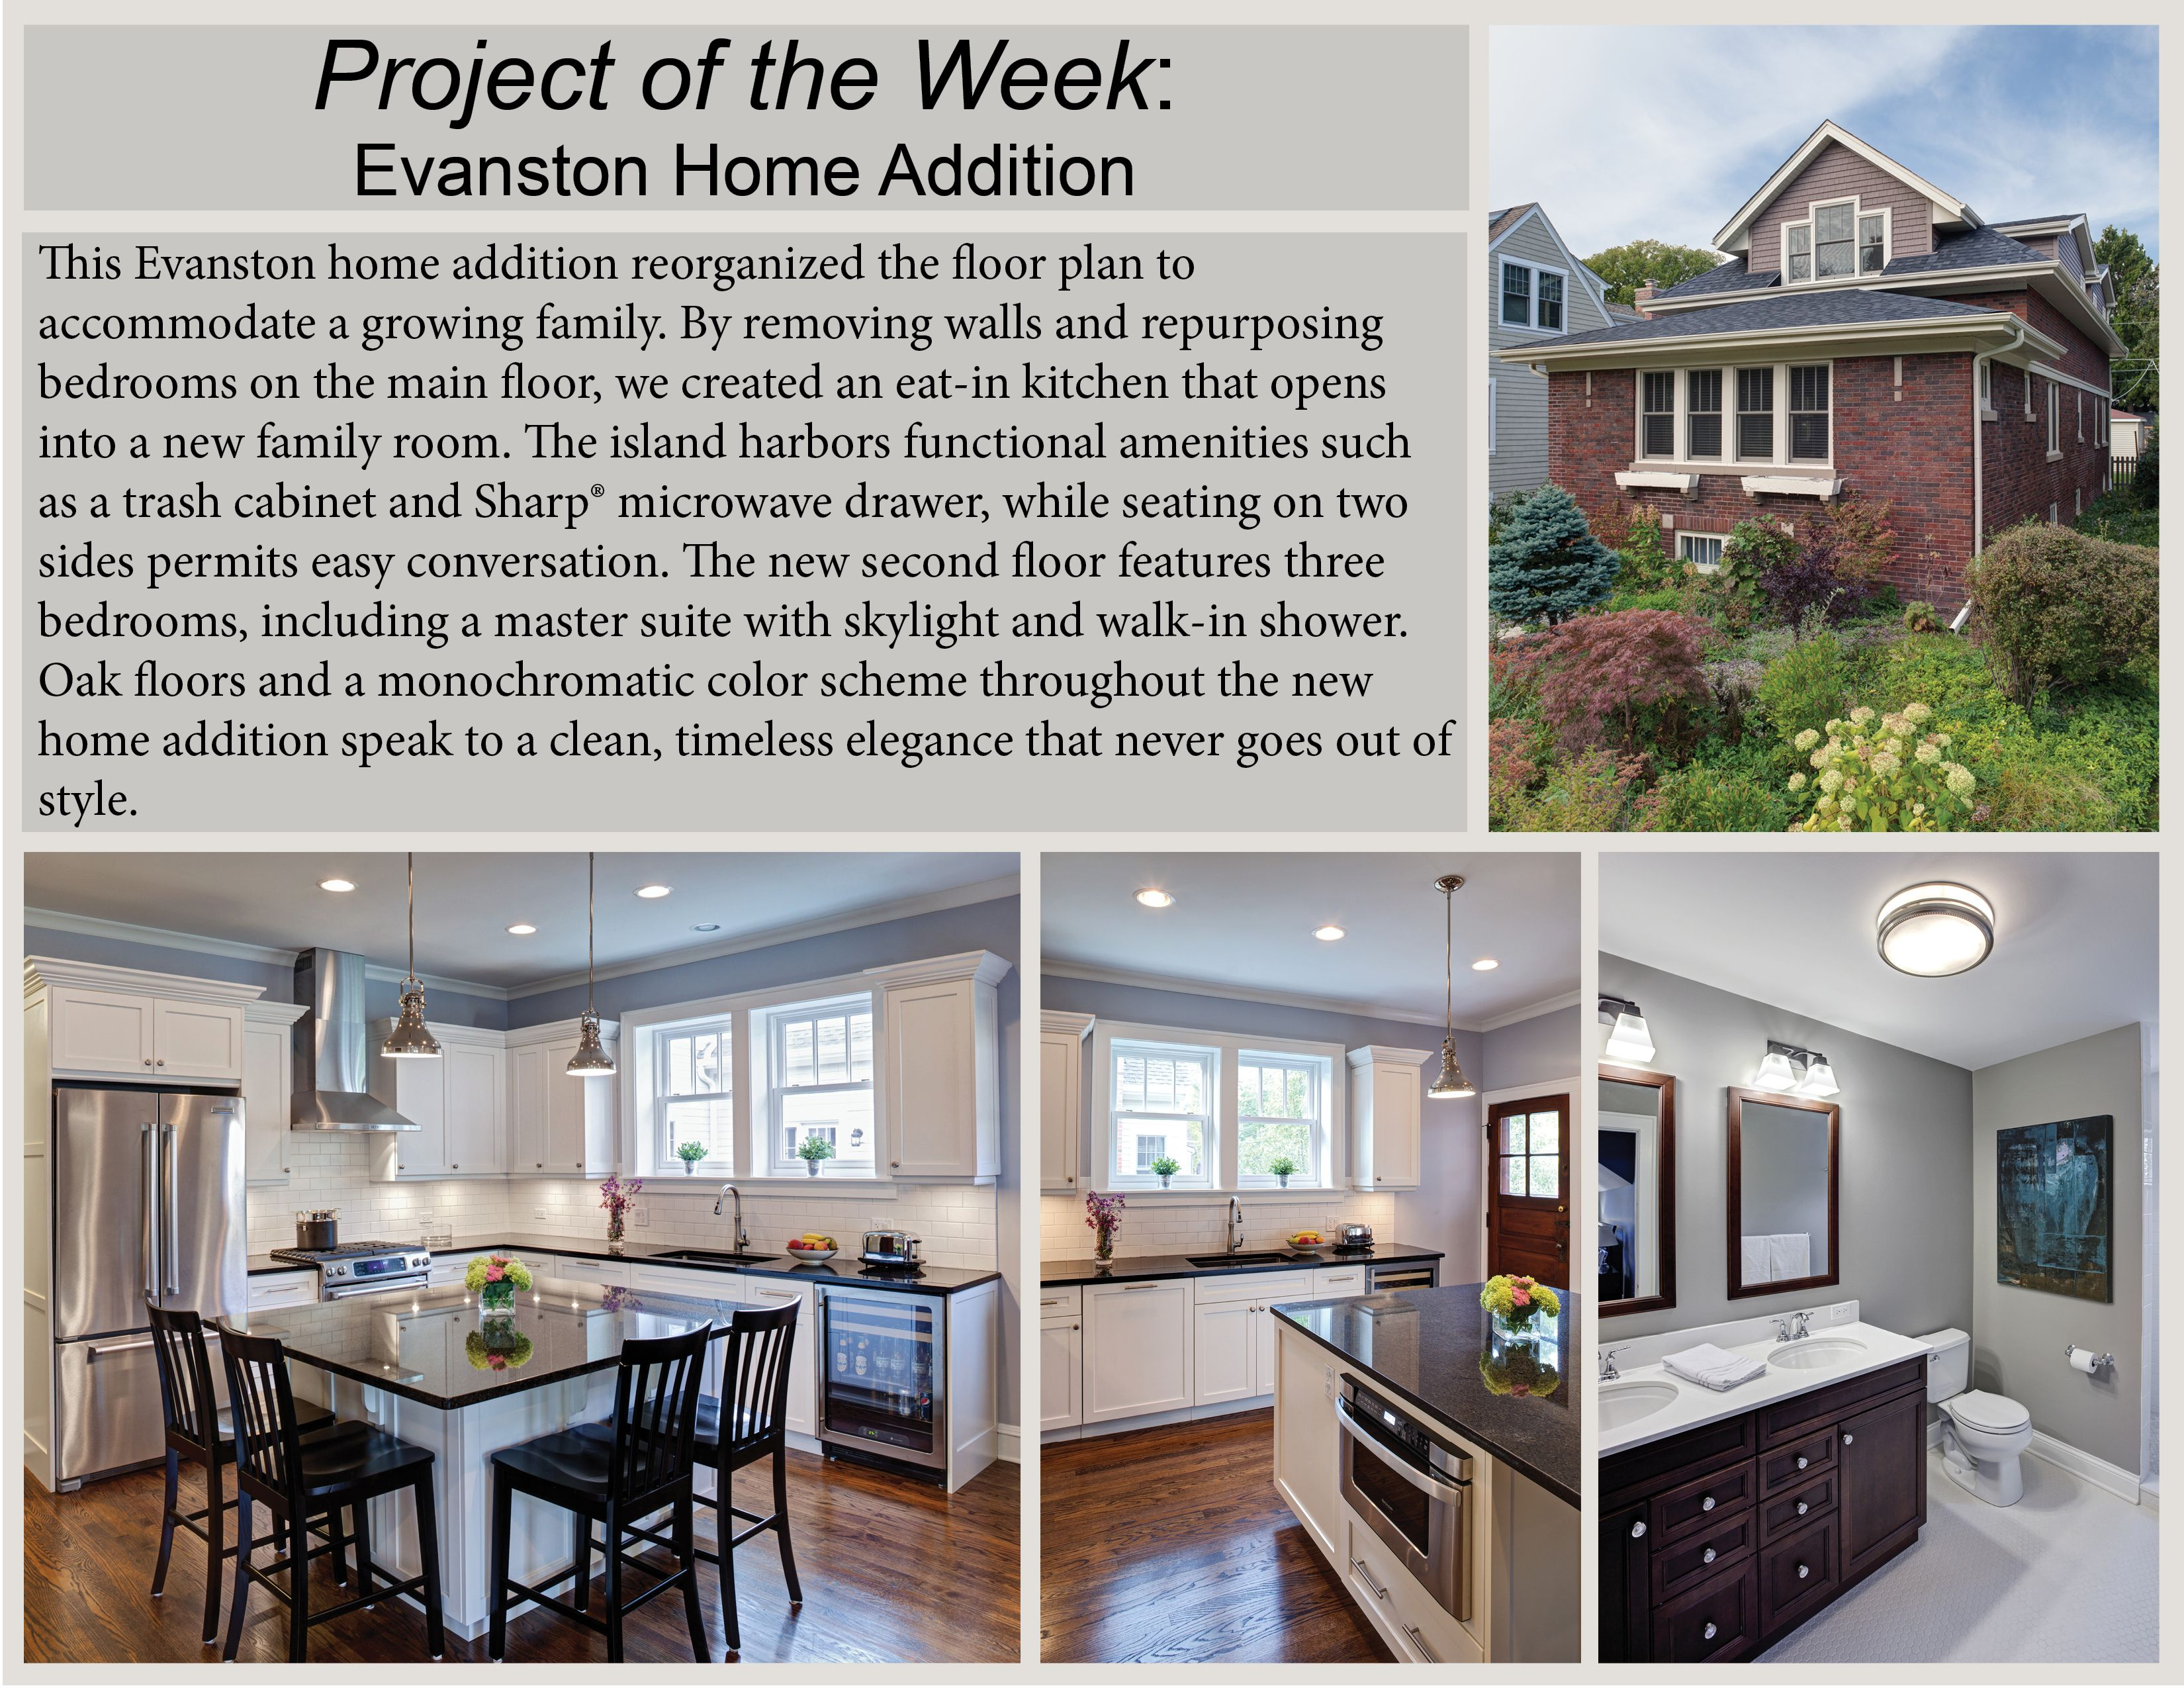 #ProjectOfTheWeek: This Evanston home addition reorganized the floor plan to accommodate a growing family. By removing walls and repurposing bedrooms on the main floor, we created an eat-in kitchen that opens into a new family room.